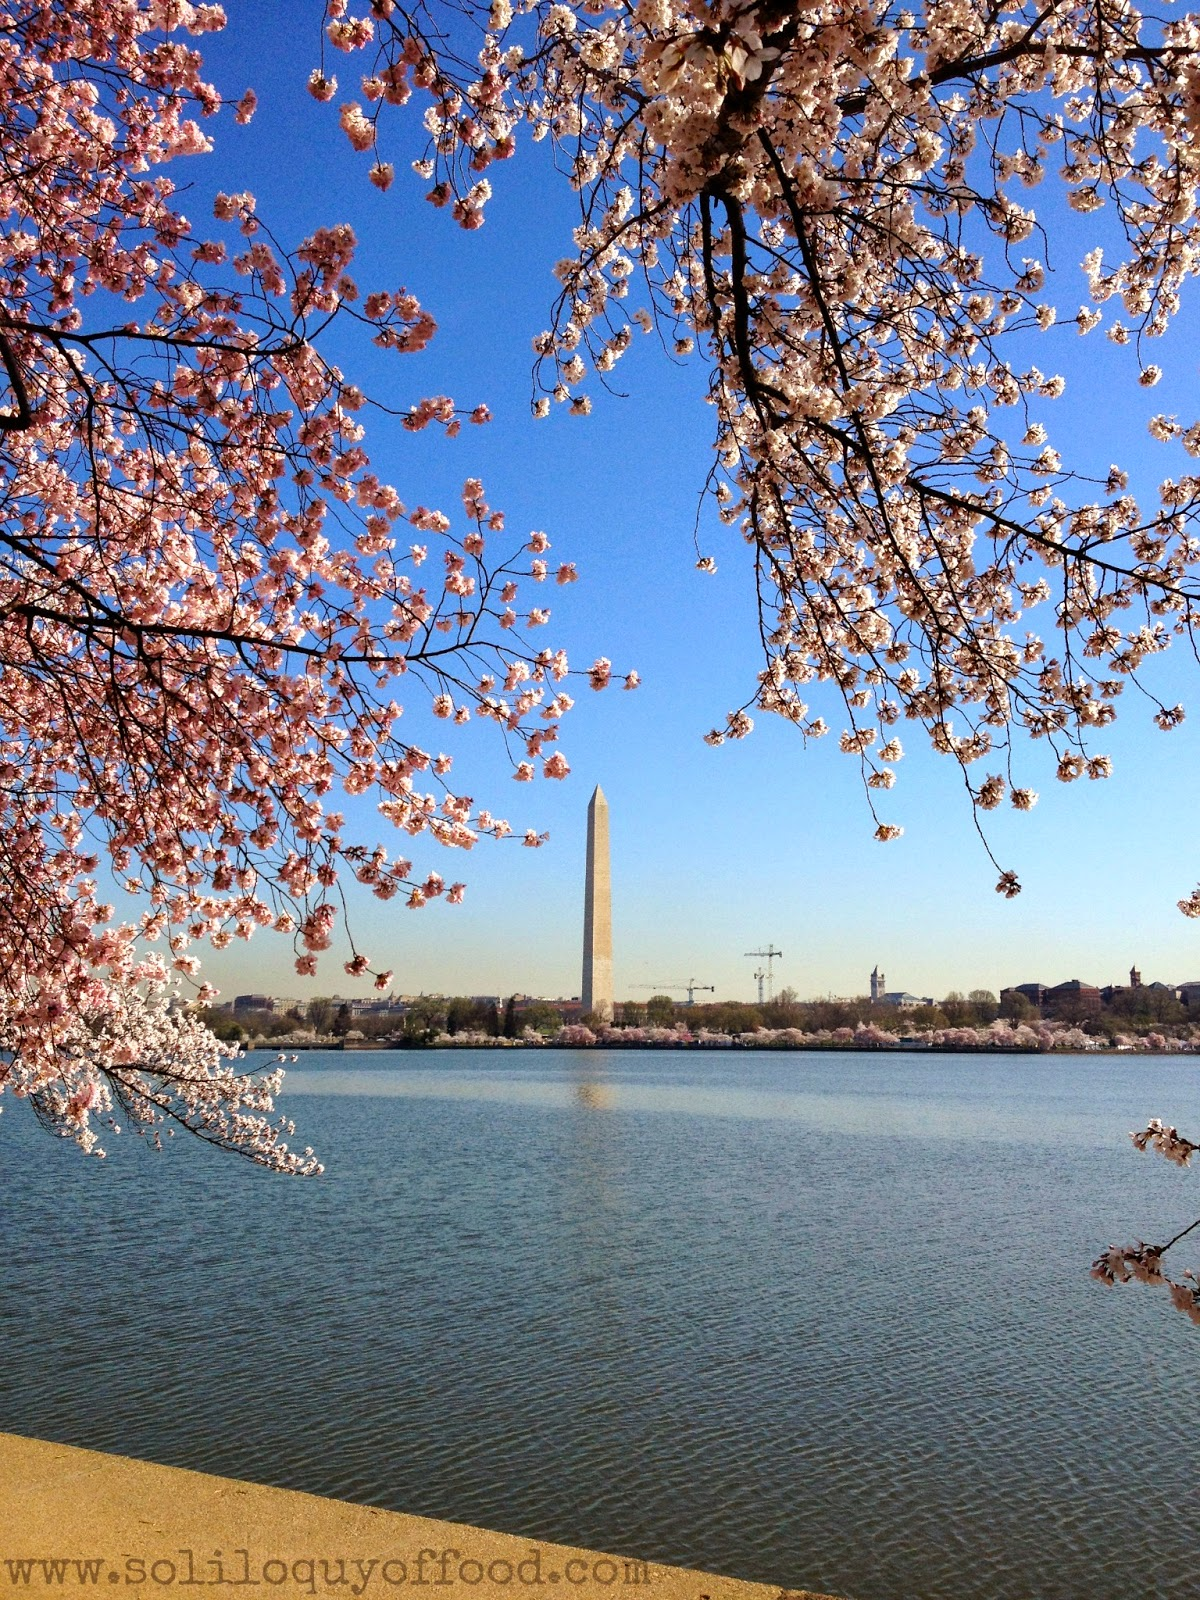 The Washington Monument from across the Tidal Basin - Cherry Blossoms 2014, Washington, DC - www.soliloquyoffood.com